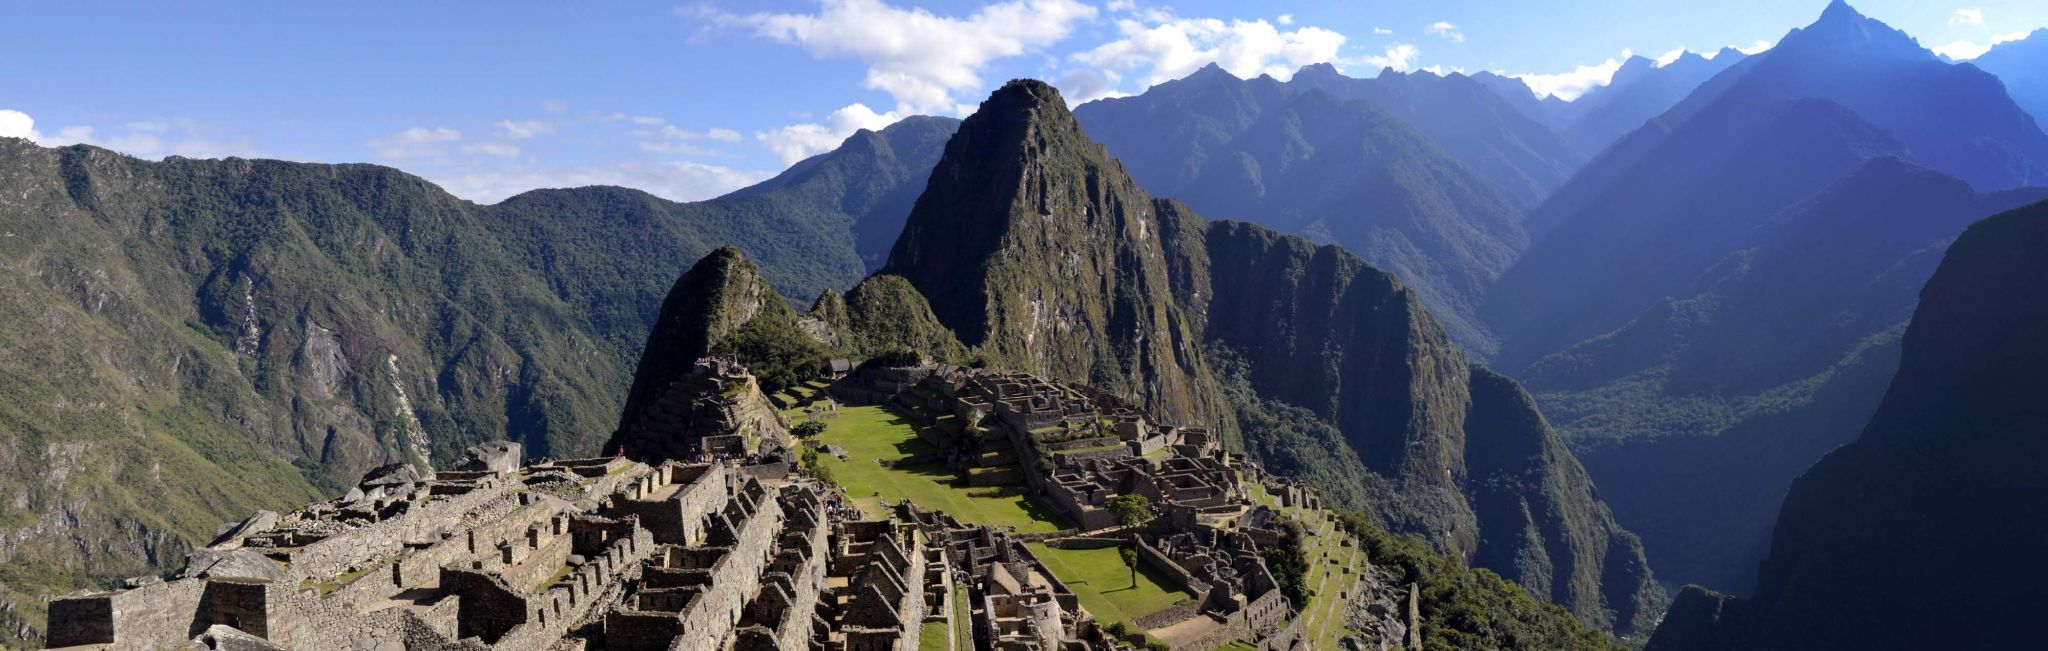 An overlook to the famous civilization of Machu Picchu